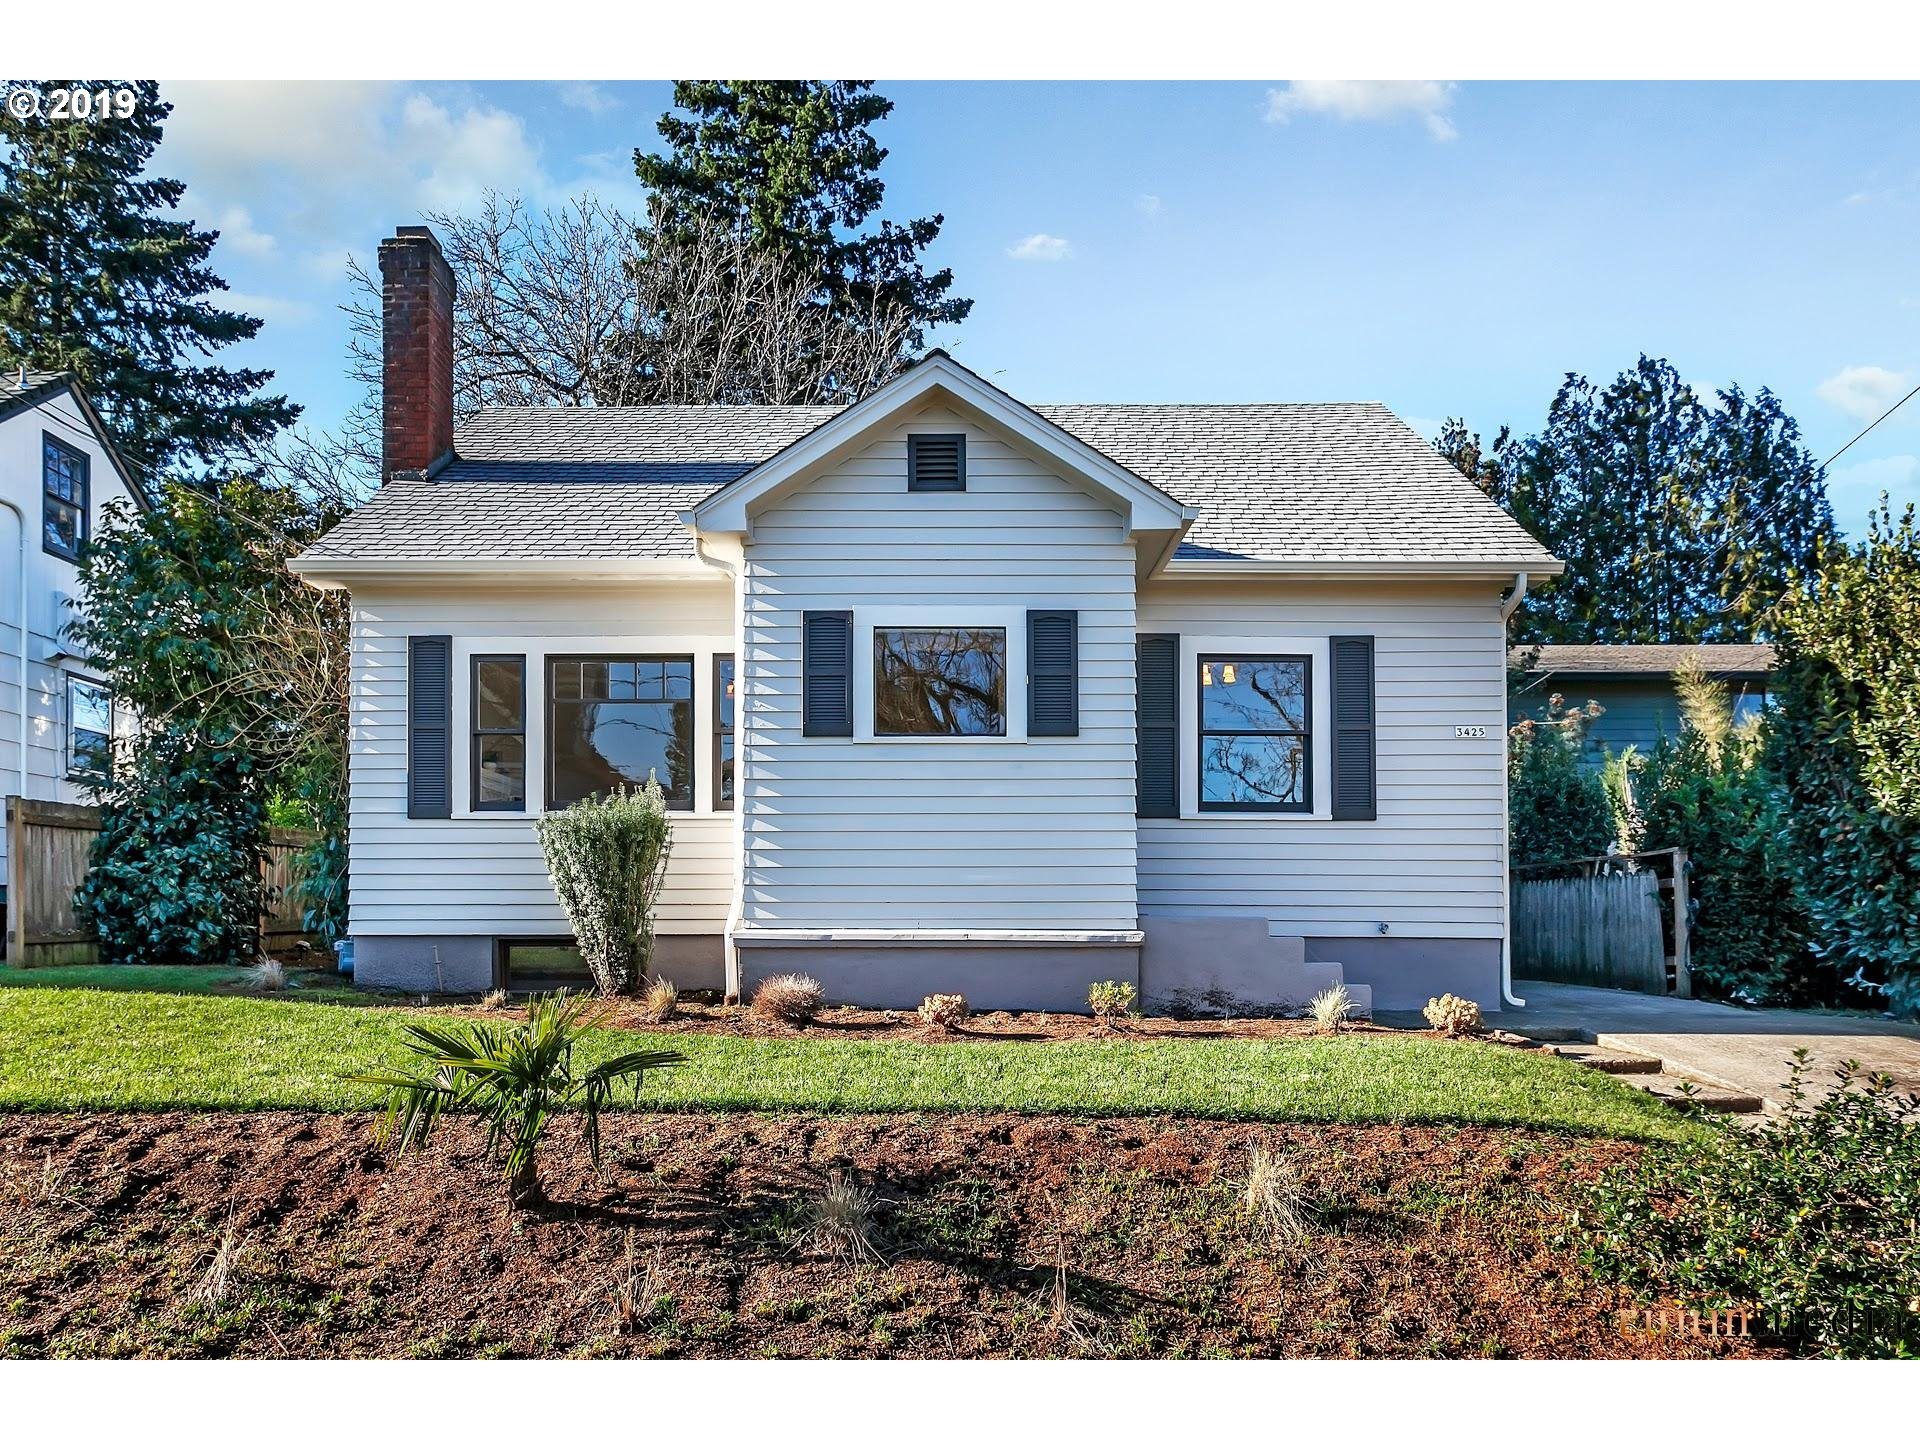 Located in Portland's Rose City Park neighborhood, this home has been thoughtfully renovated with quality finishes and fixtures throughout. Features include beautiful wood floors, a brand new kitchen, and updated bathrooms. The living room has large windows that bring in plenty of natural light & a cozy fireplace w/ built-ins. Relax in the sunroom off of the kitchen, with a view of the fenced backyard. Ideal location off of NE Fremont!